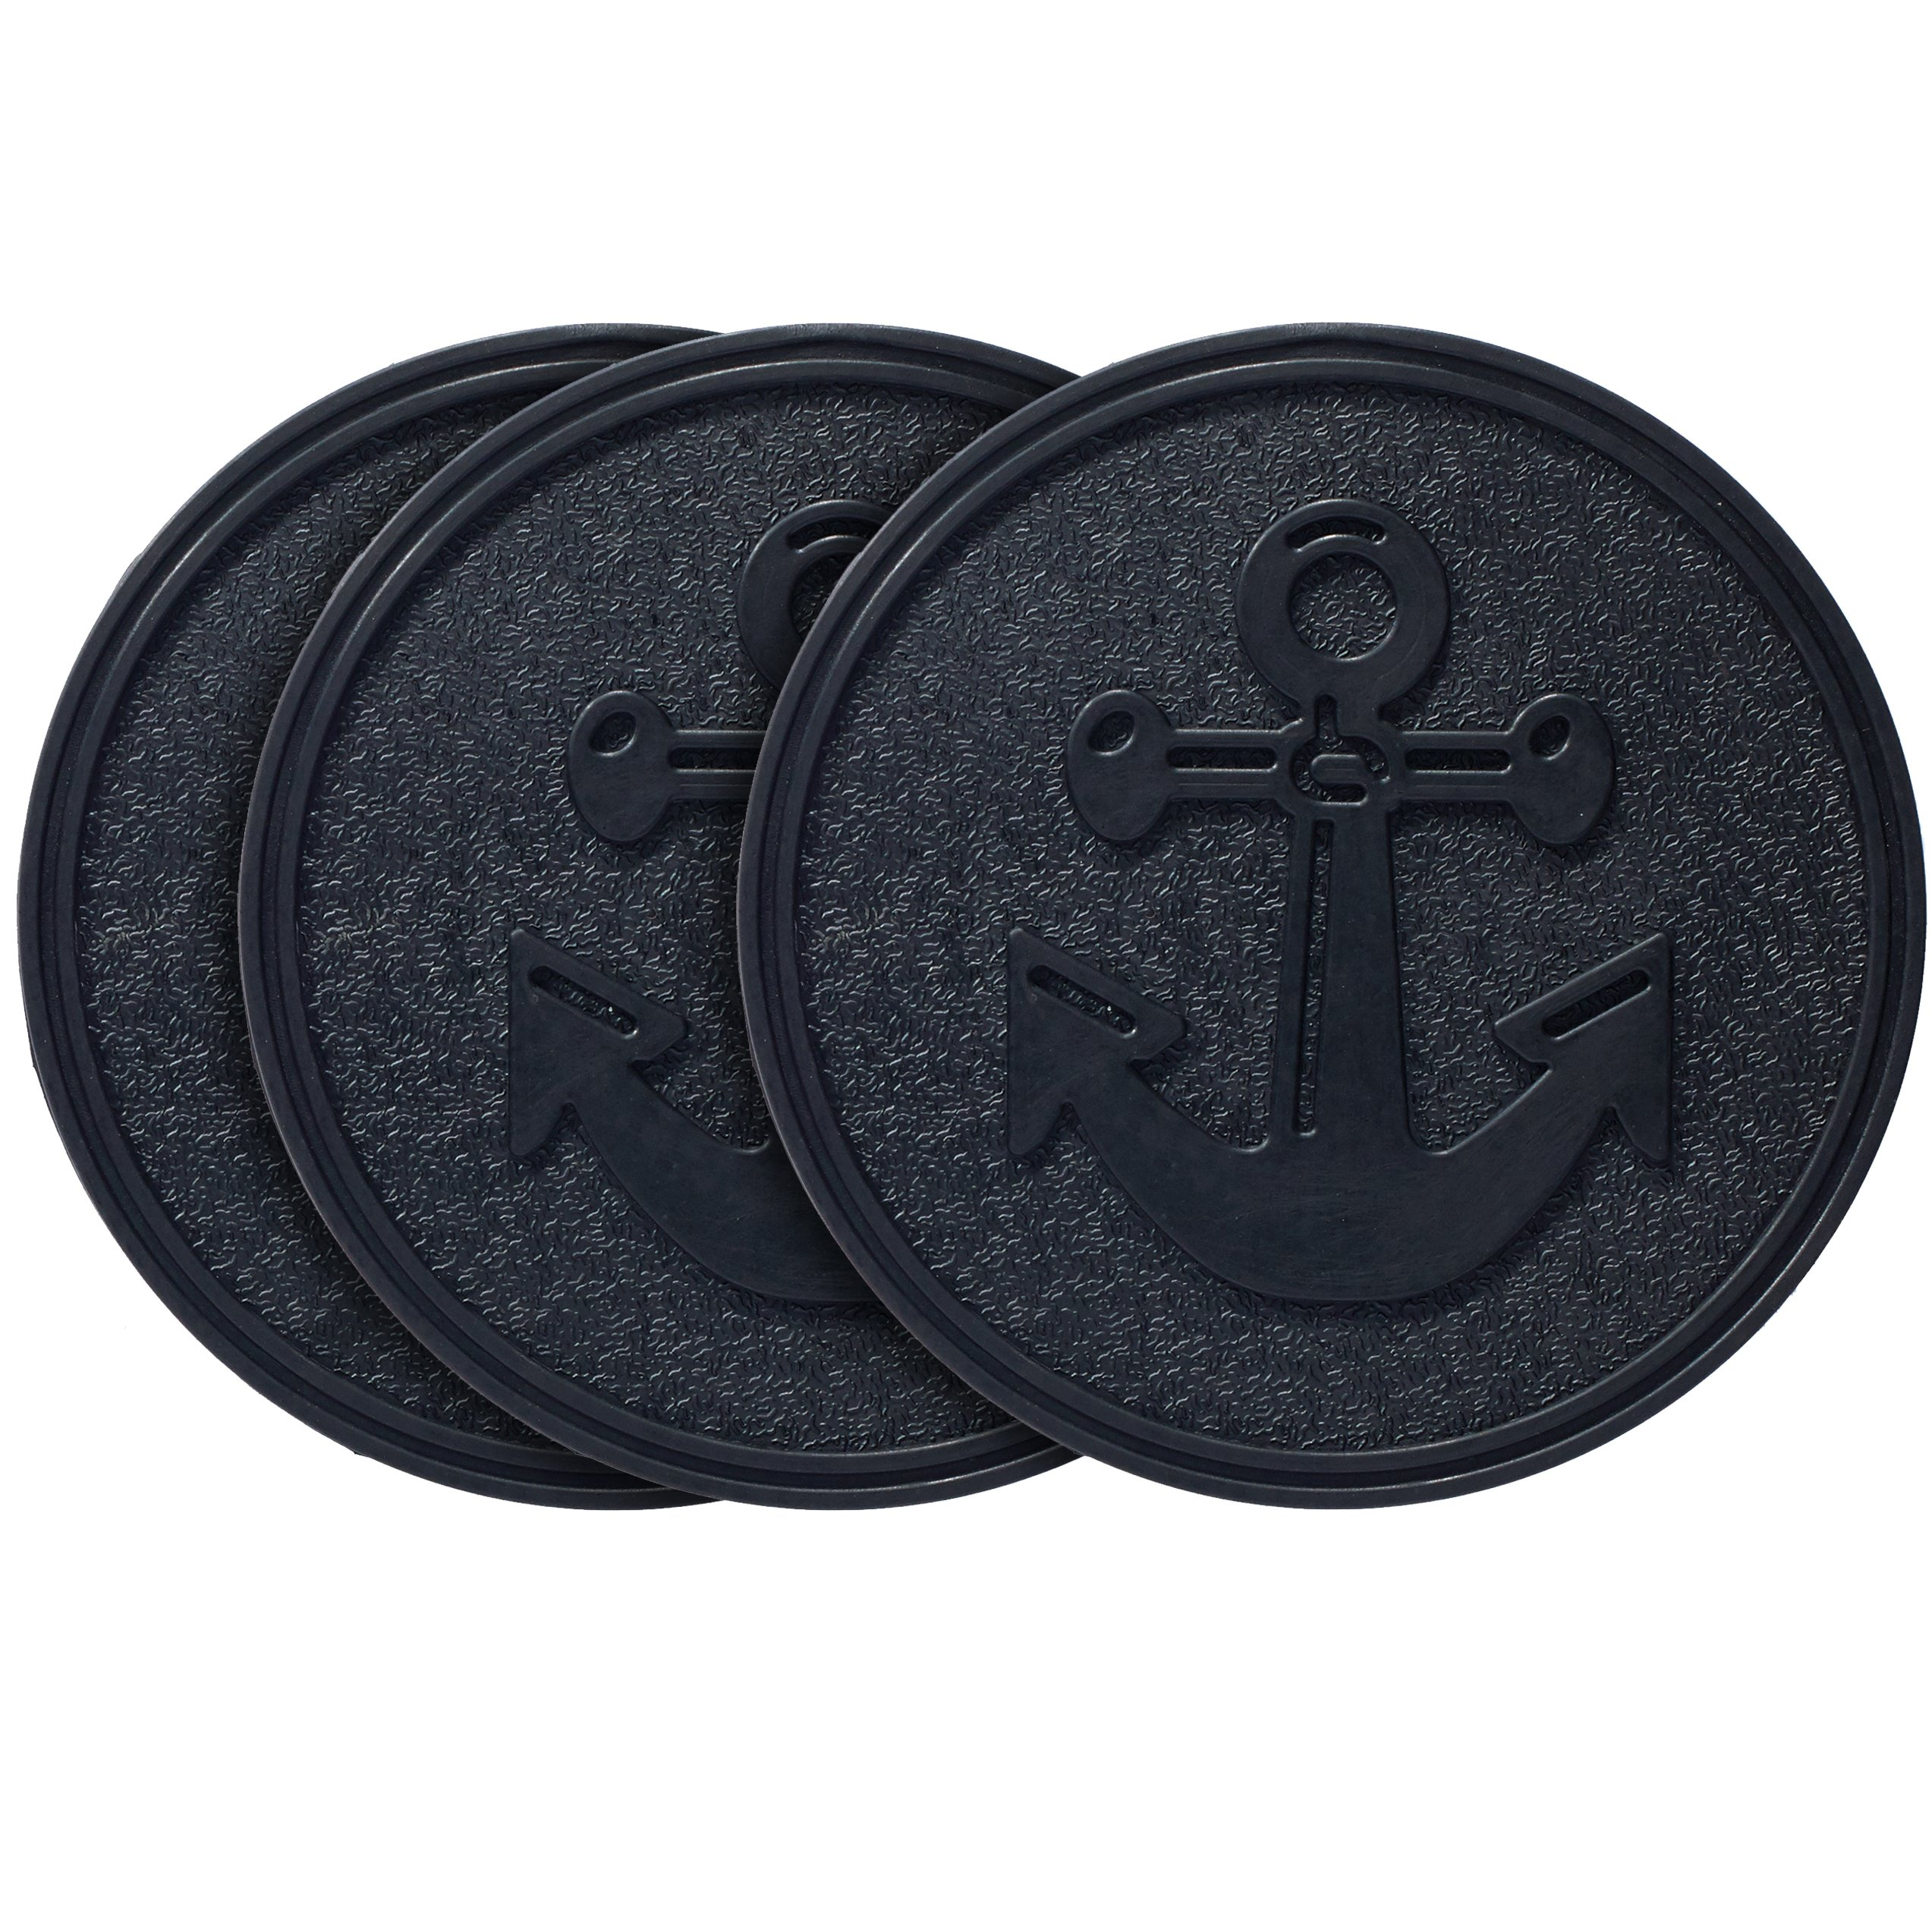 HF by LT Rubber Anchor Garden Stepping Stone, 11-3/4'', Set of 3, Black